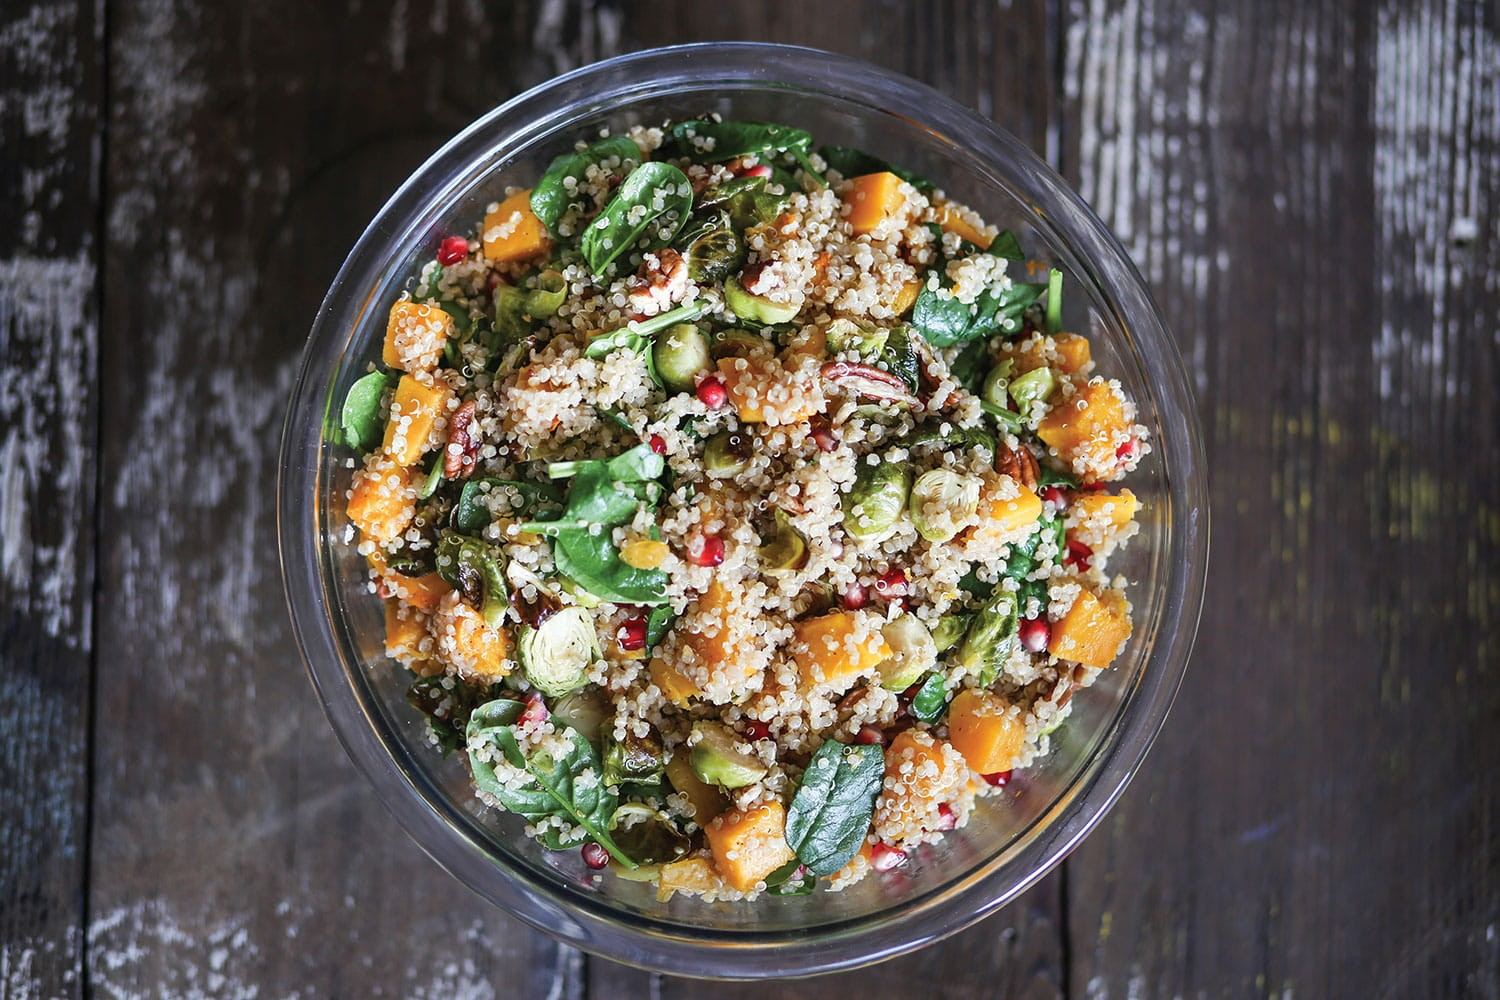 Brussels sprouts and quinoa winter mix